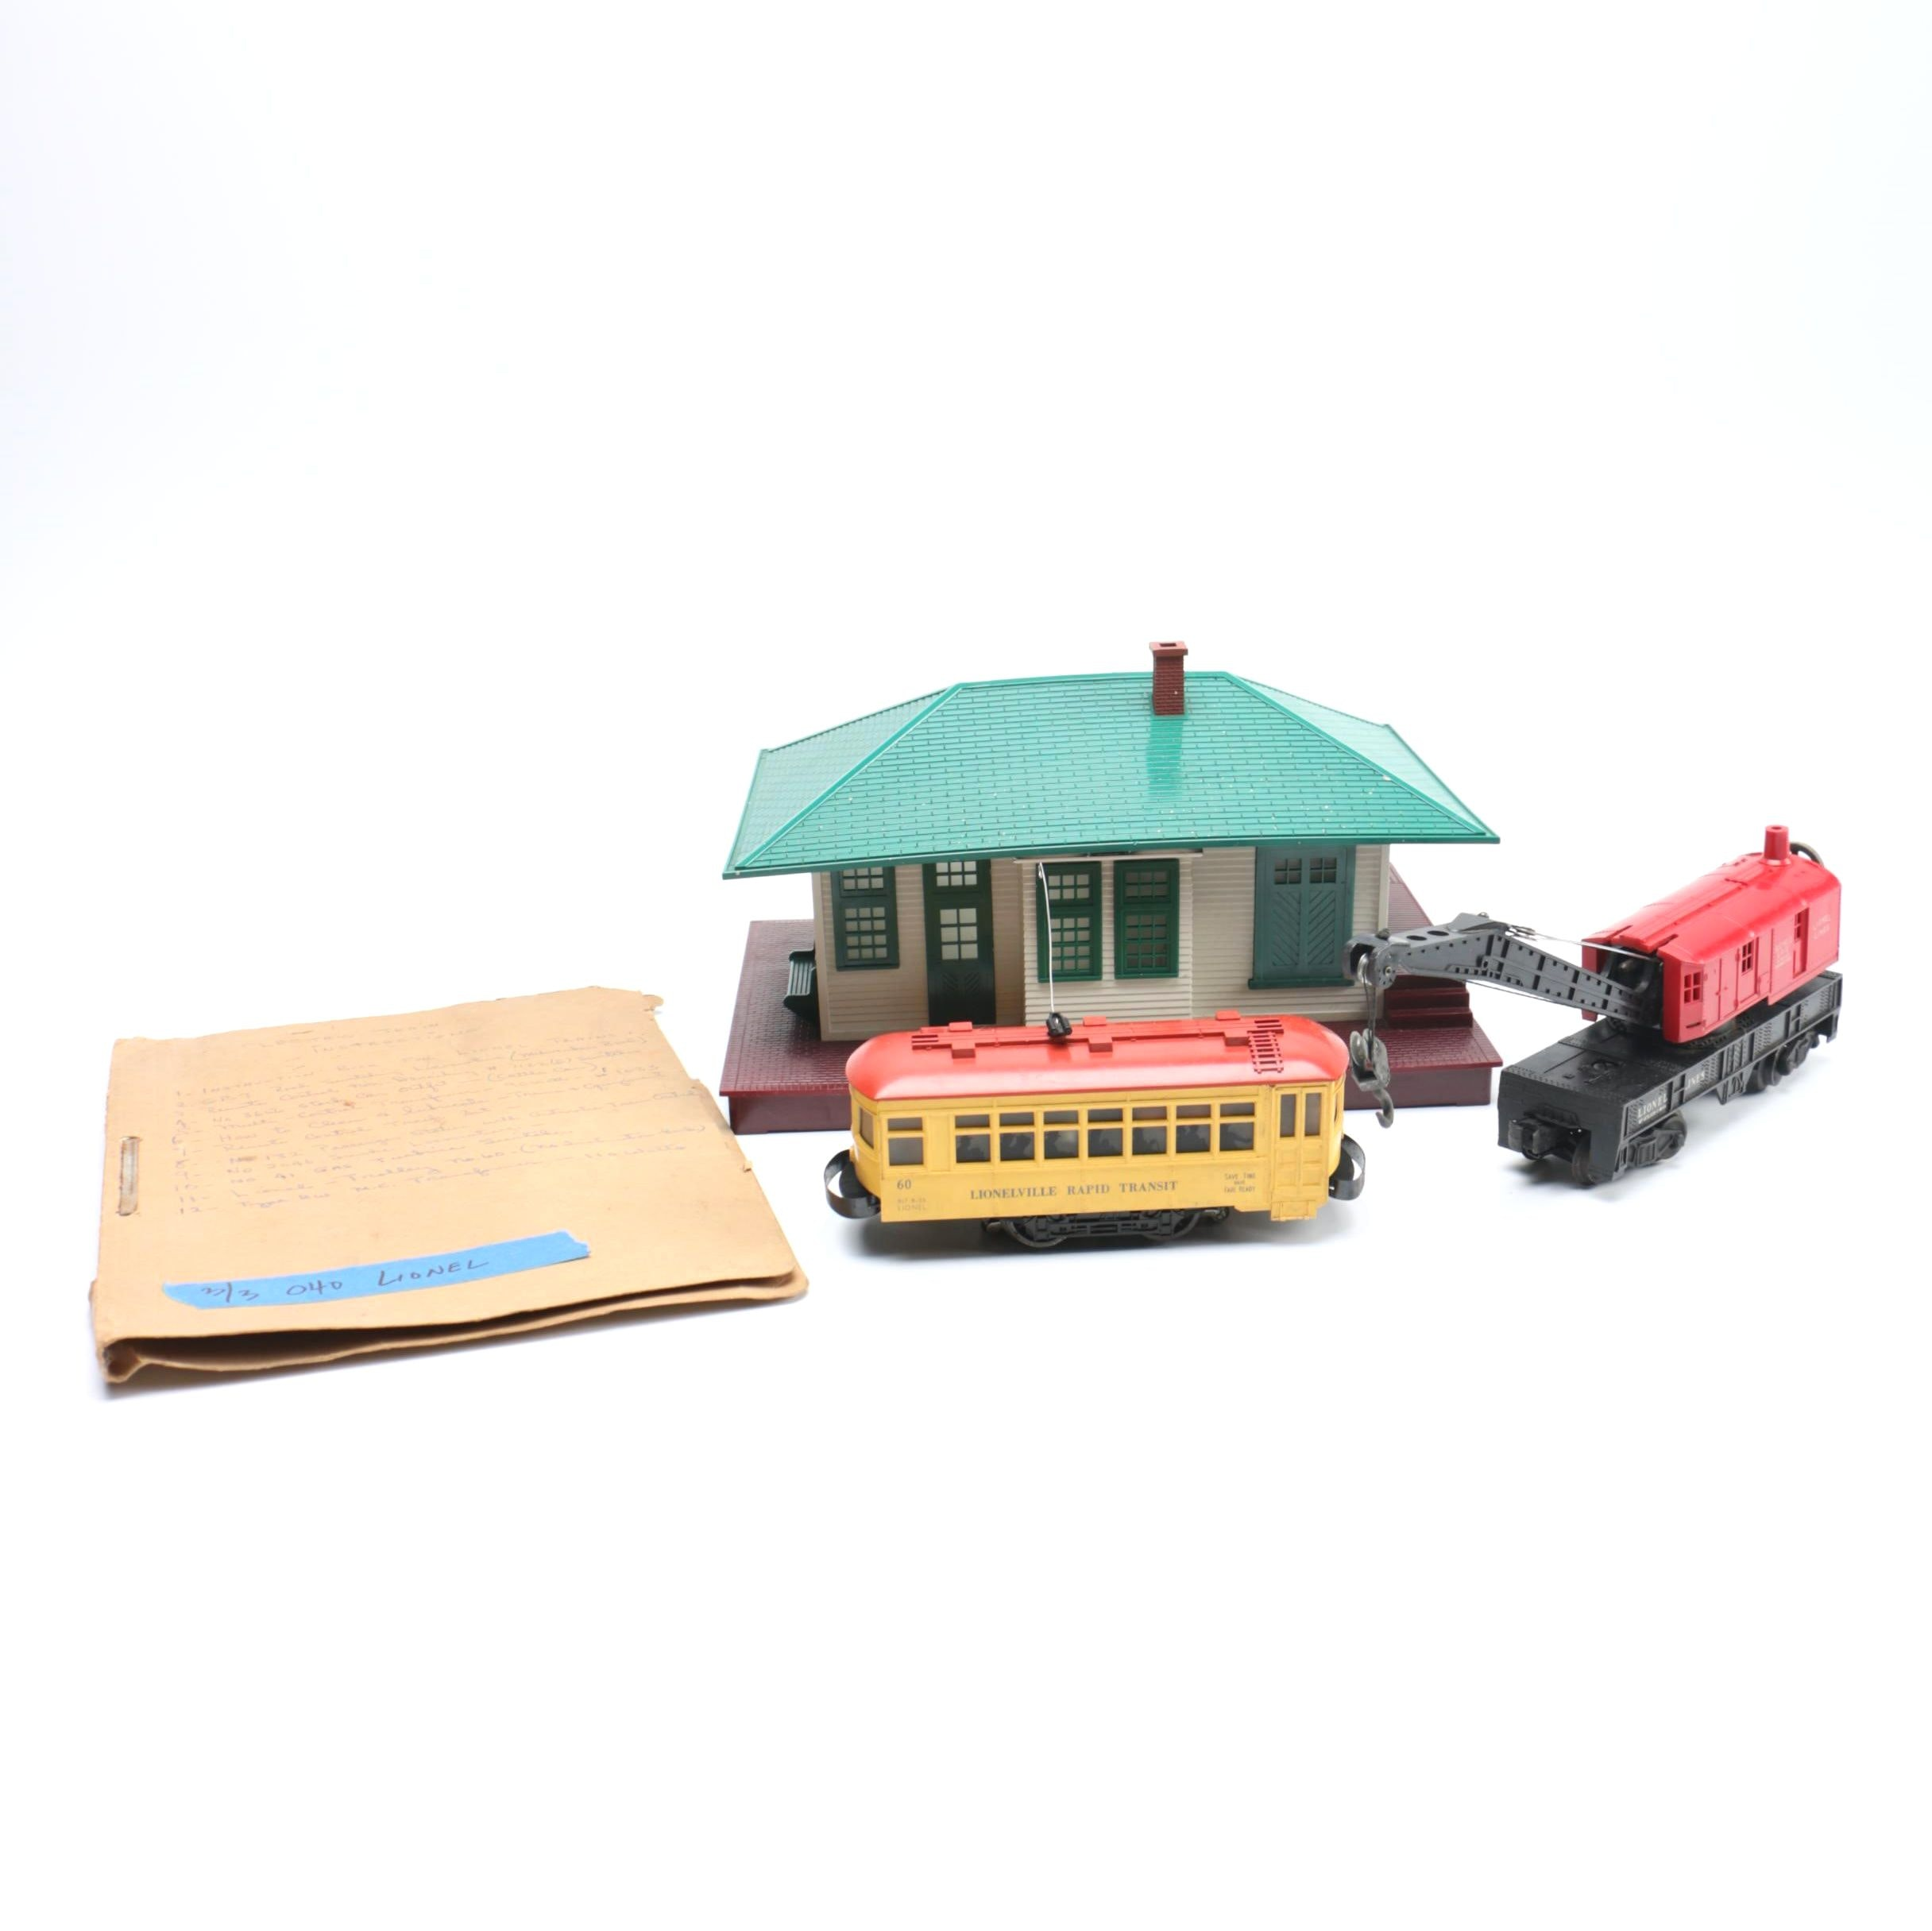 Lionel Trains and Train Stop Building